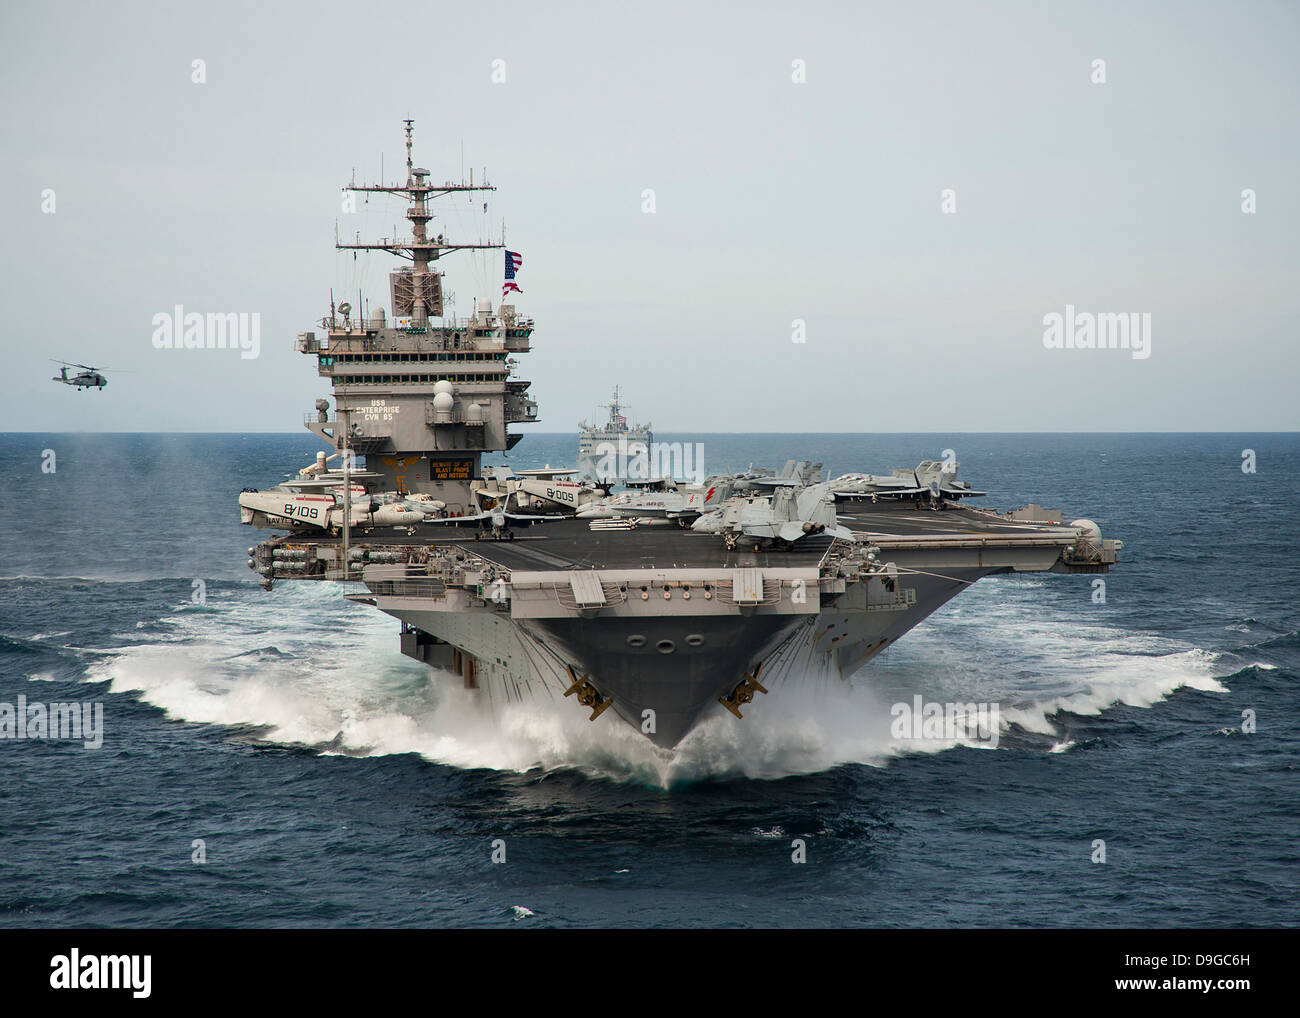 Uss Enterprise Cvn 65 Stock Photos & Uss Enterprise Cvn 65 ...